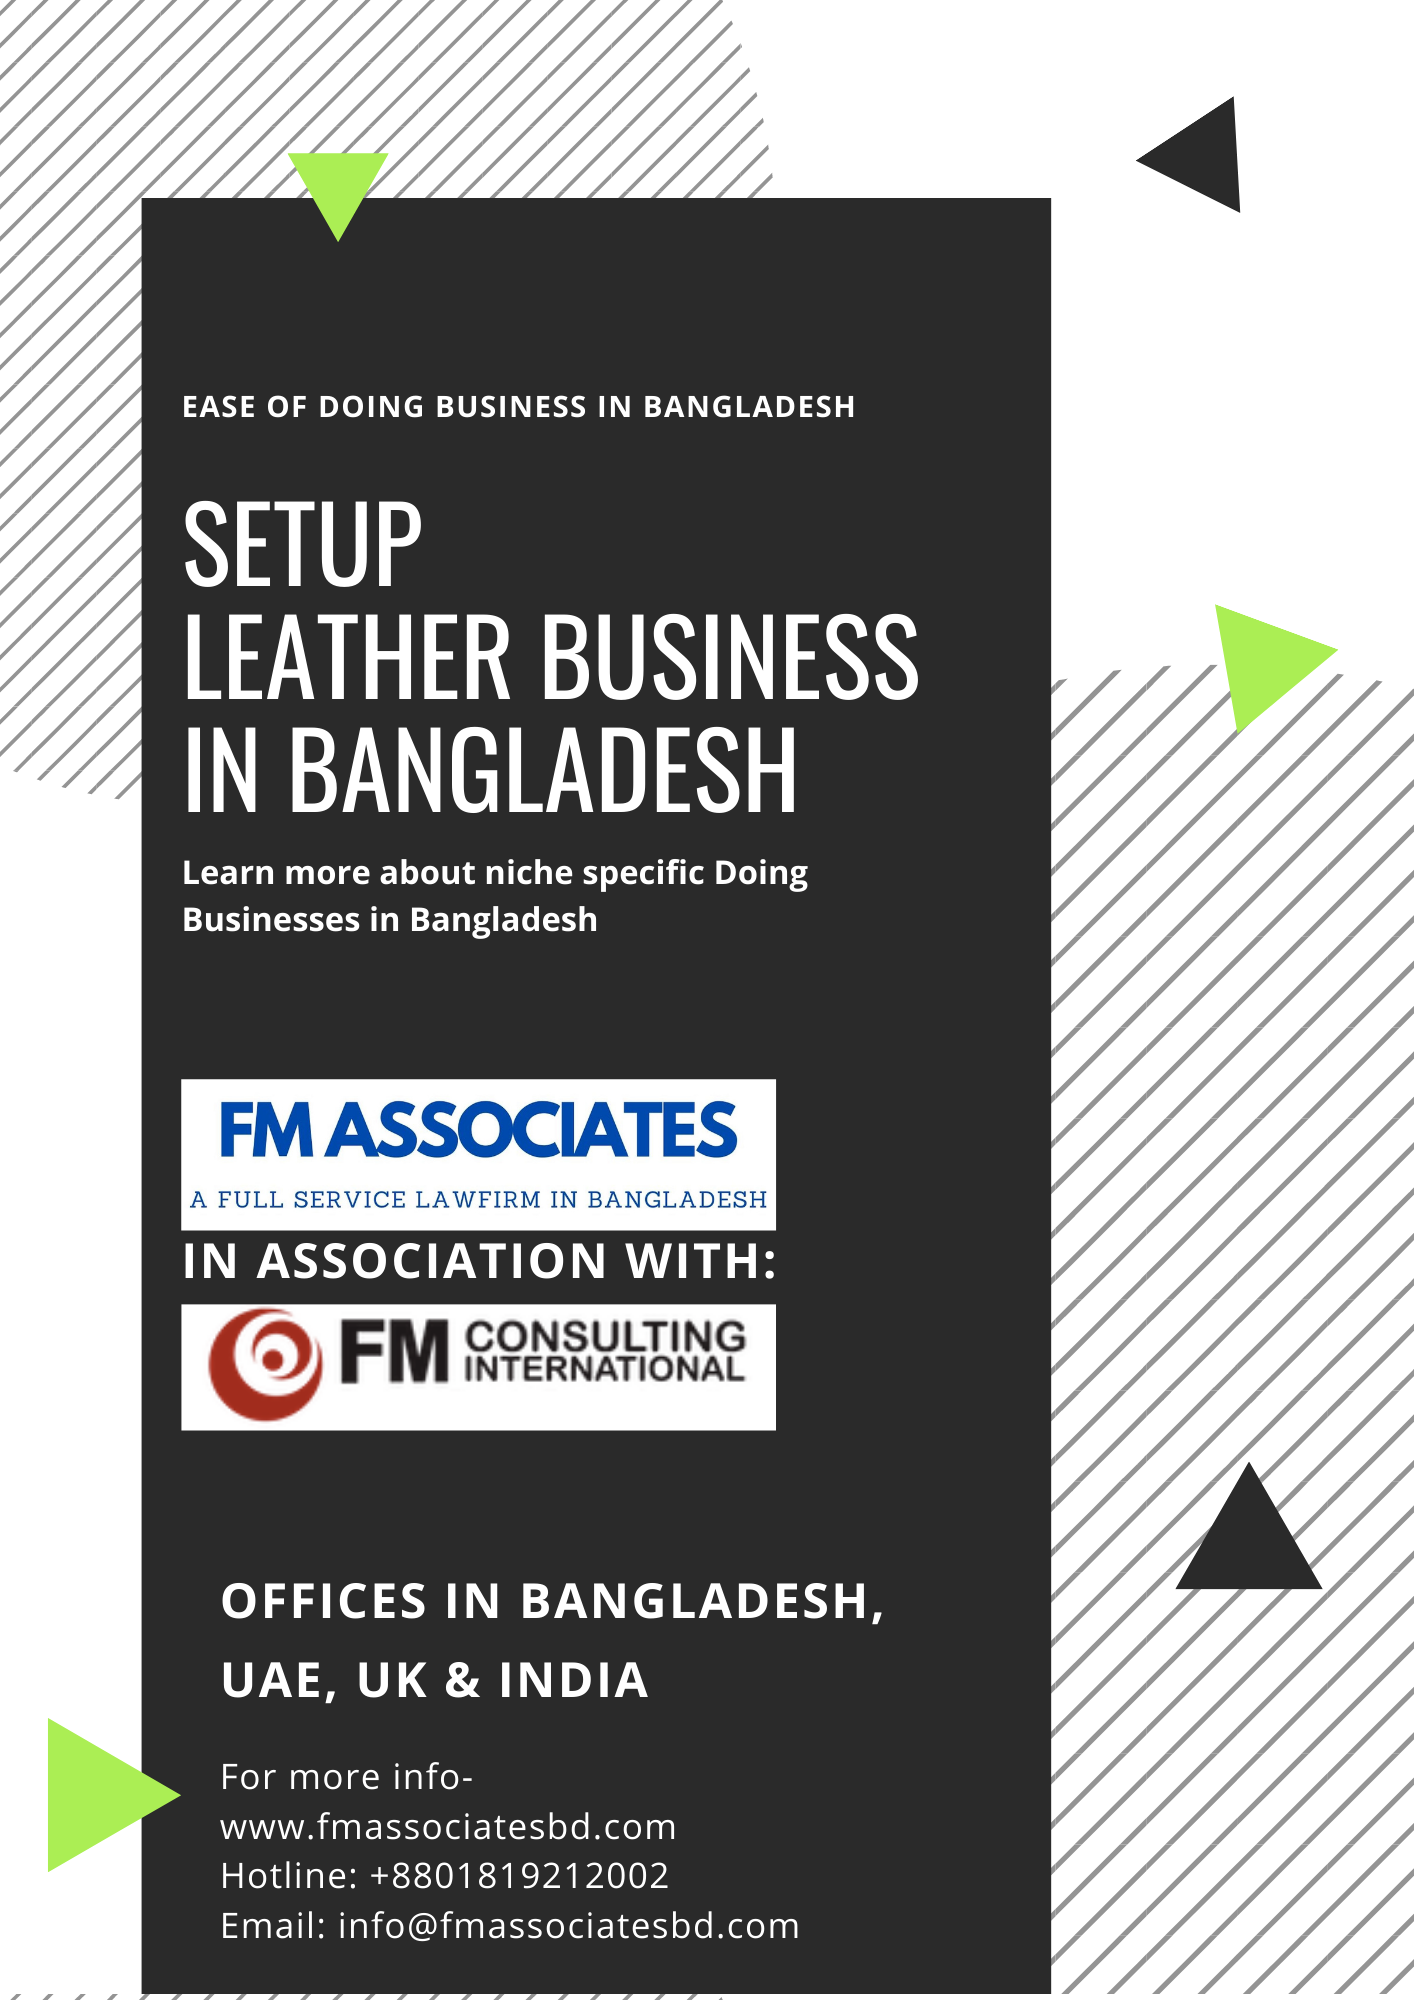 How to Setup Leather Business in Bangladesh